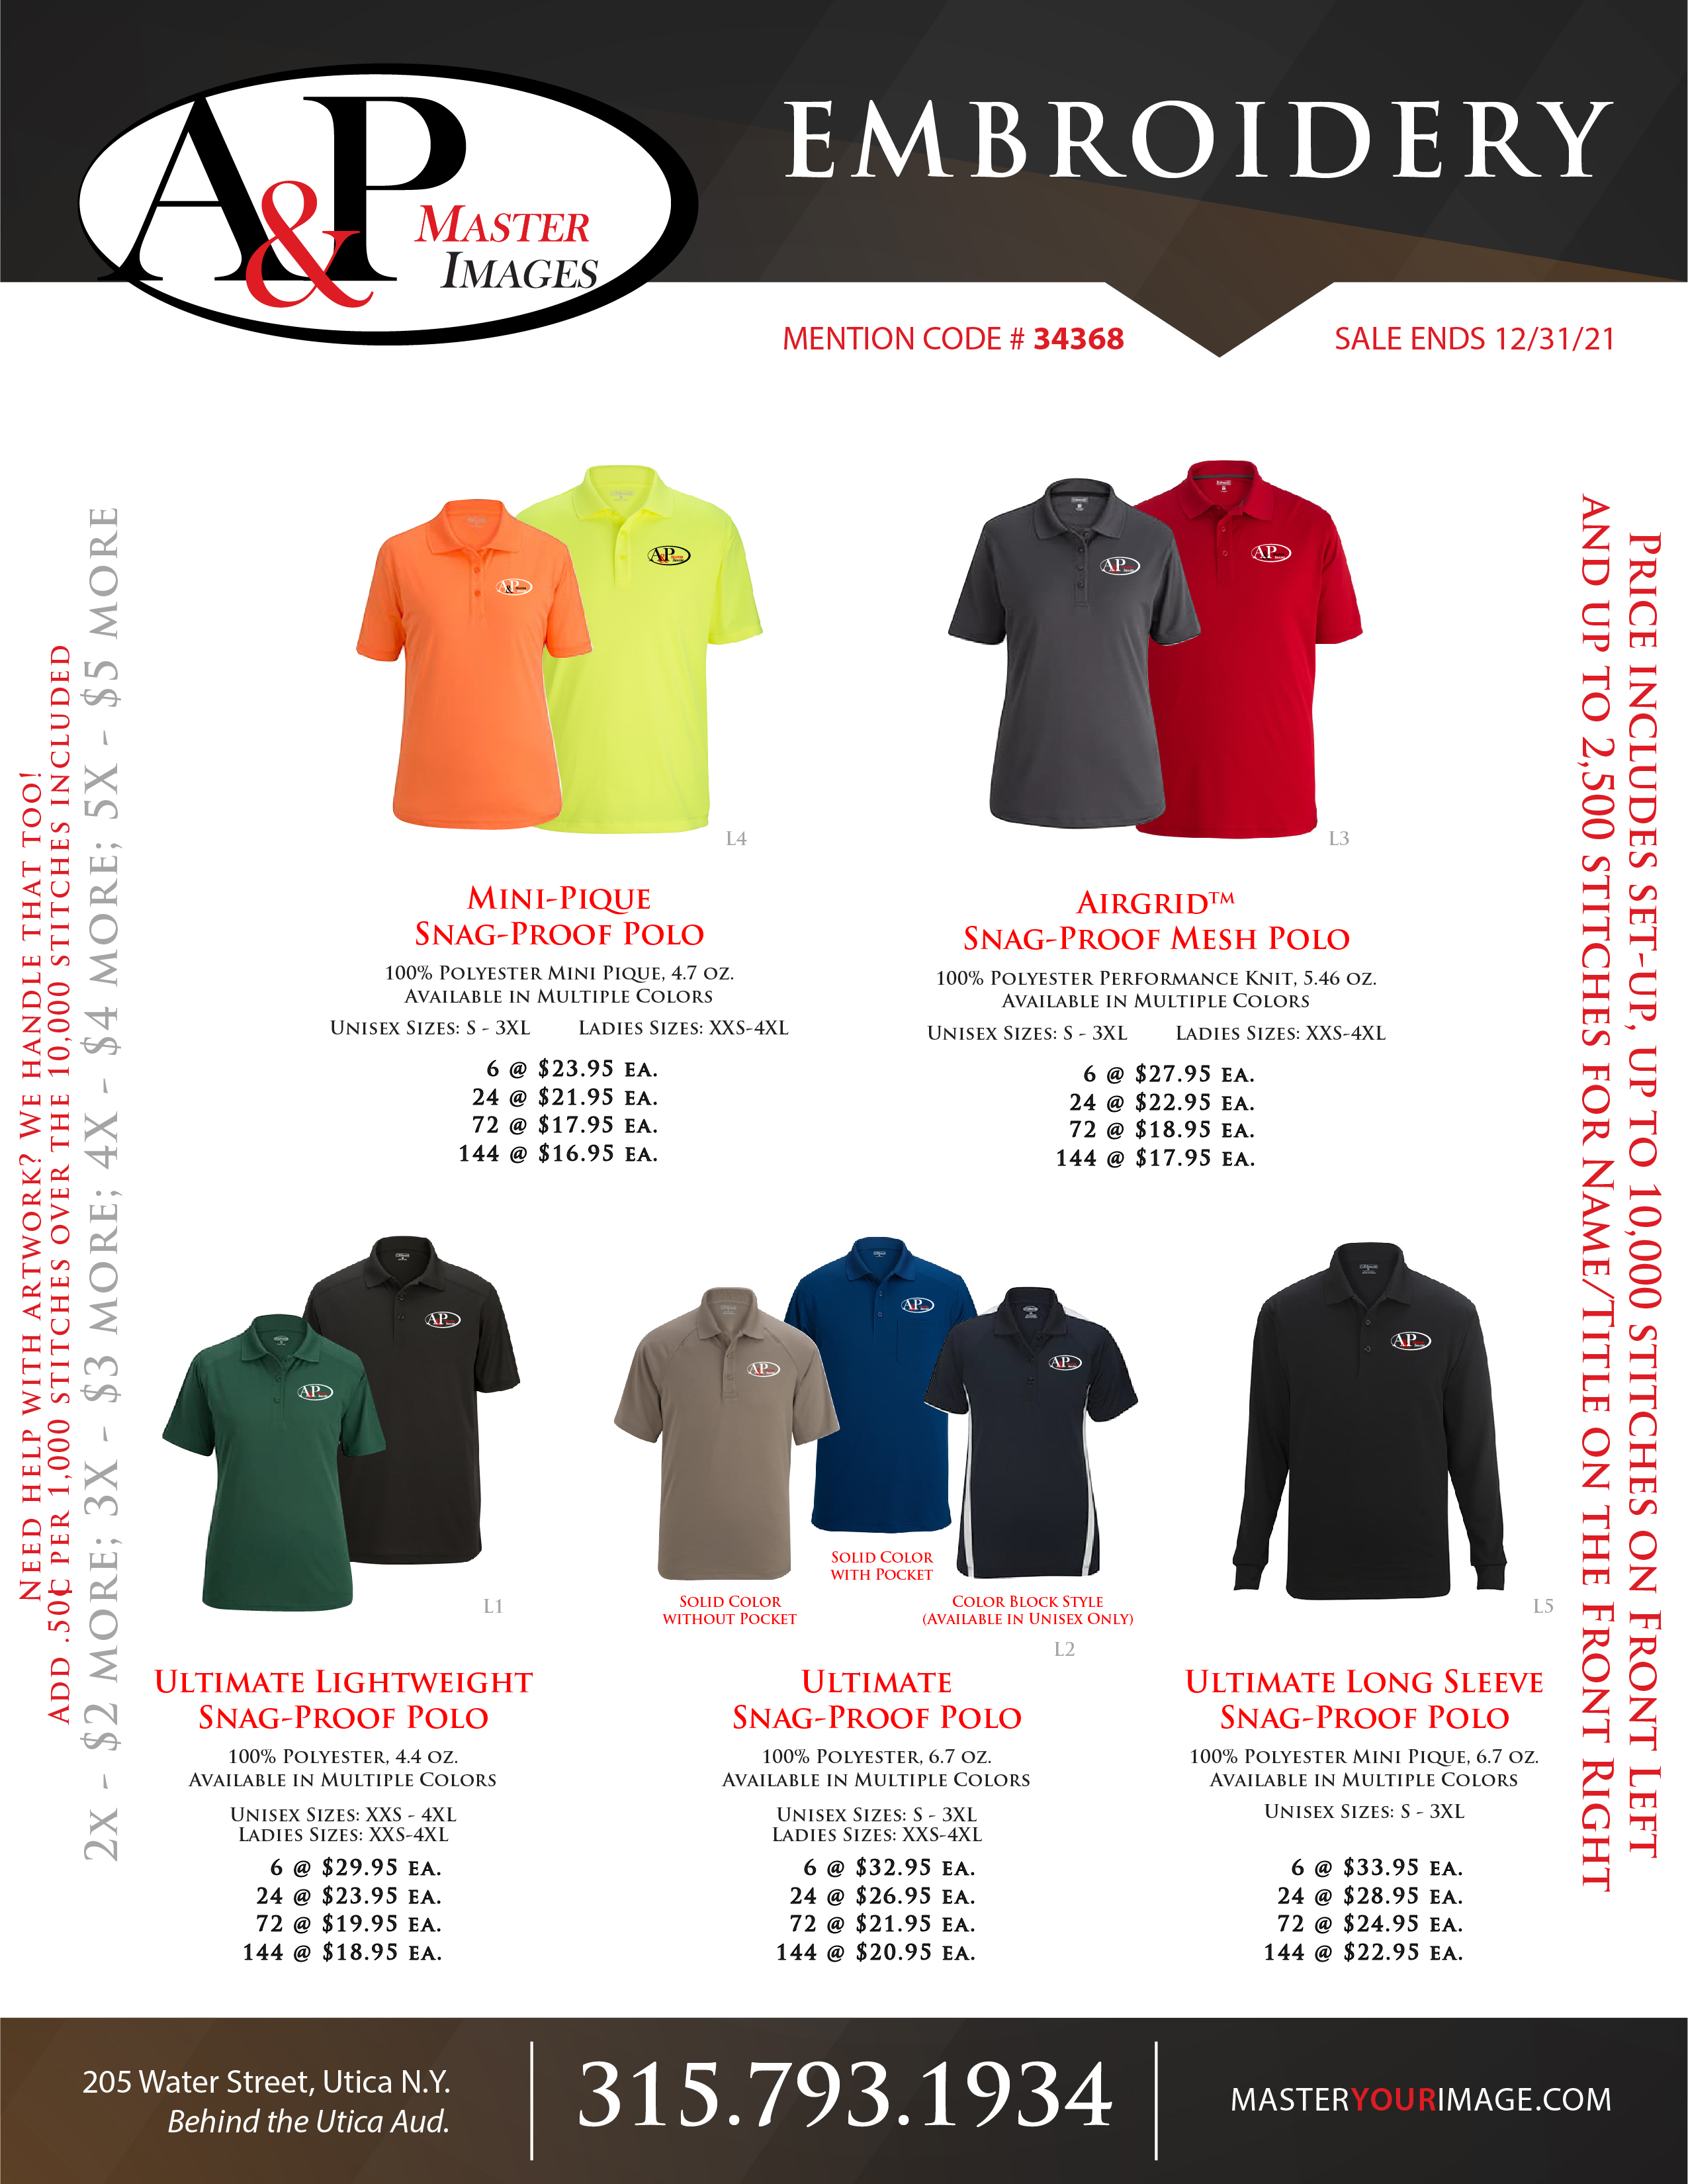 Sales Flyers - Embroidery - 13